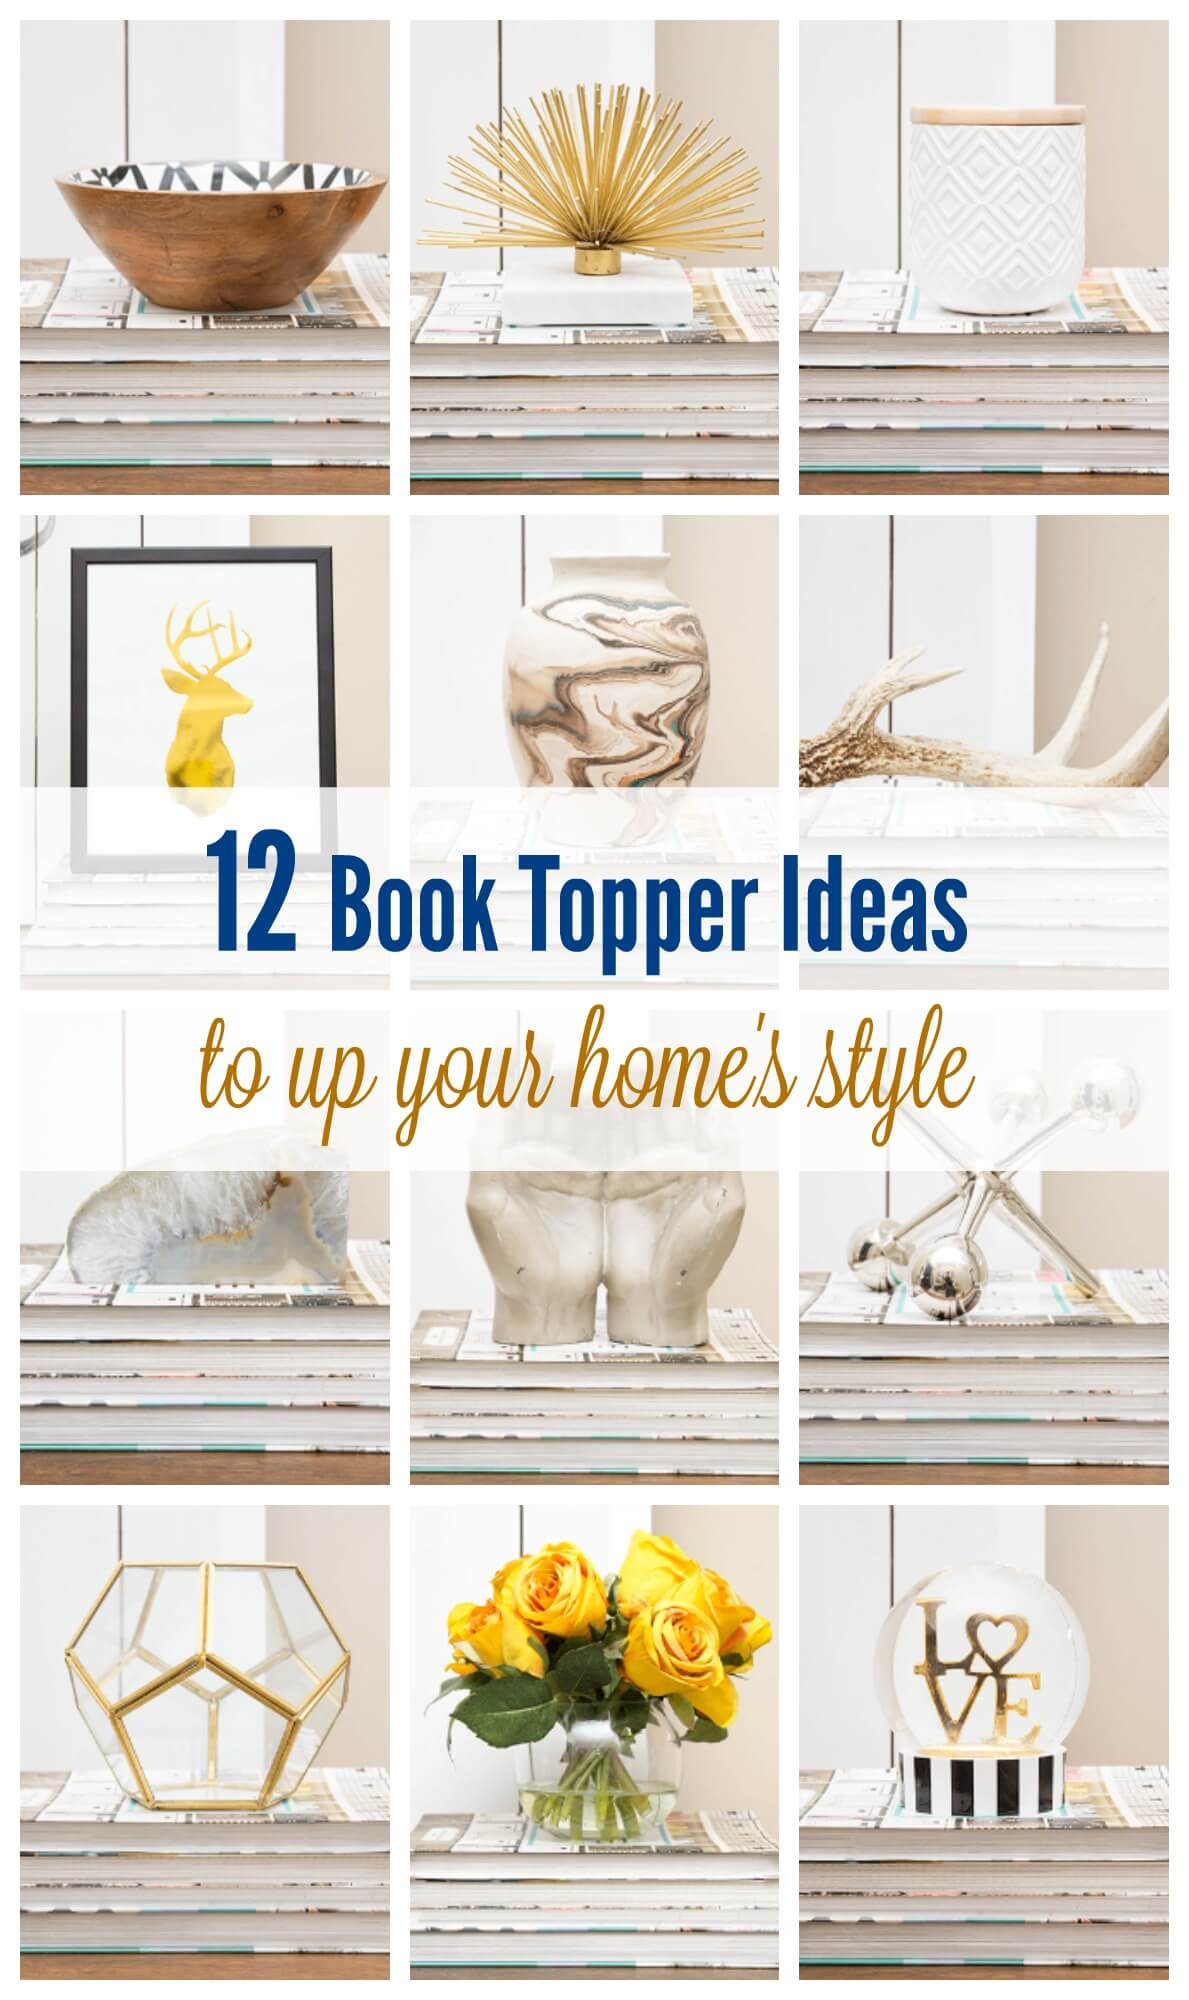 Like trays and risers, books are a great way to showcase your treasured objects in your home. In this post, you'll be inspired to pull out those weird and wonderful accessories you've been storing for far too long, and get decorating!